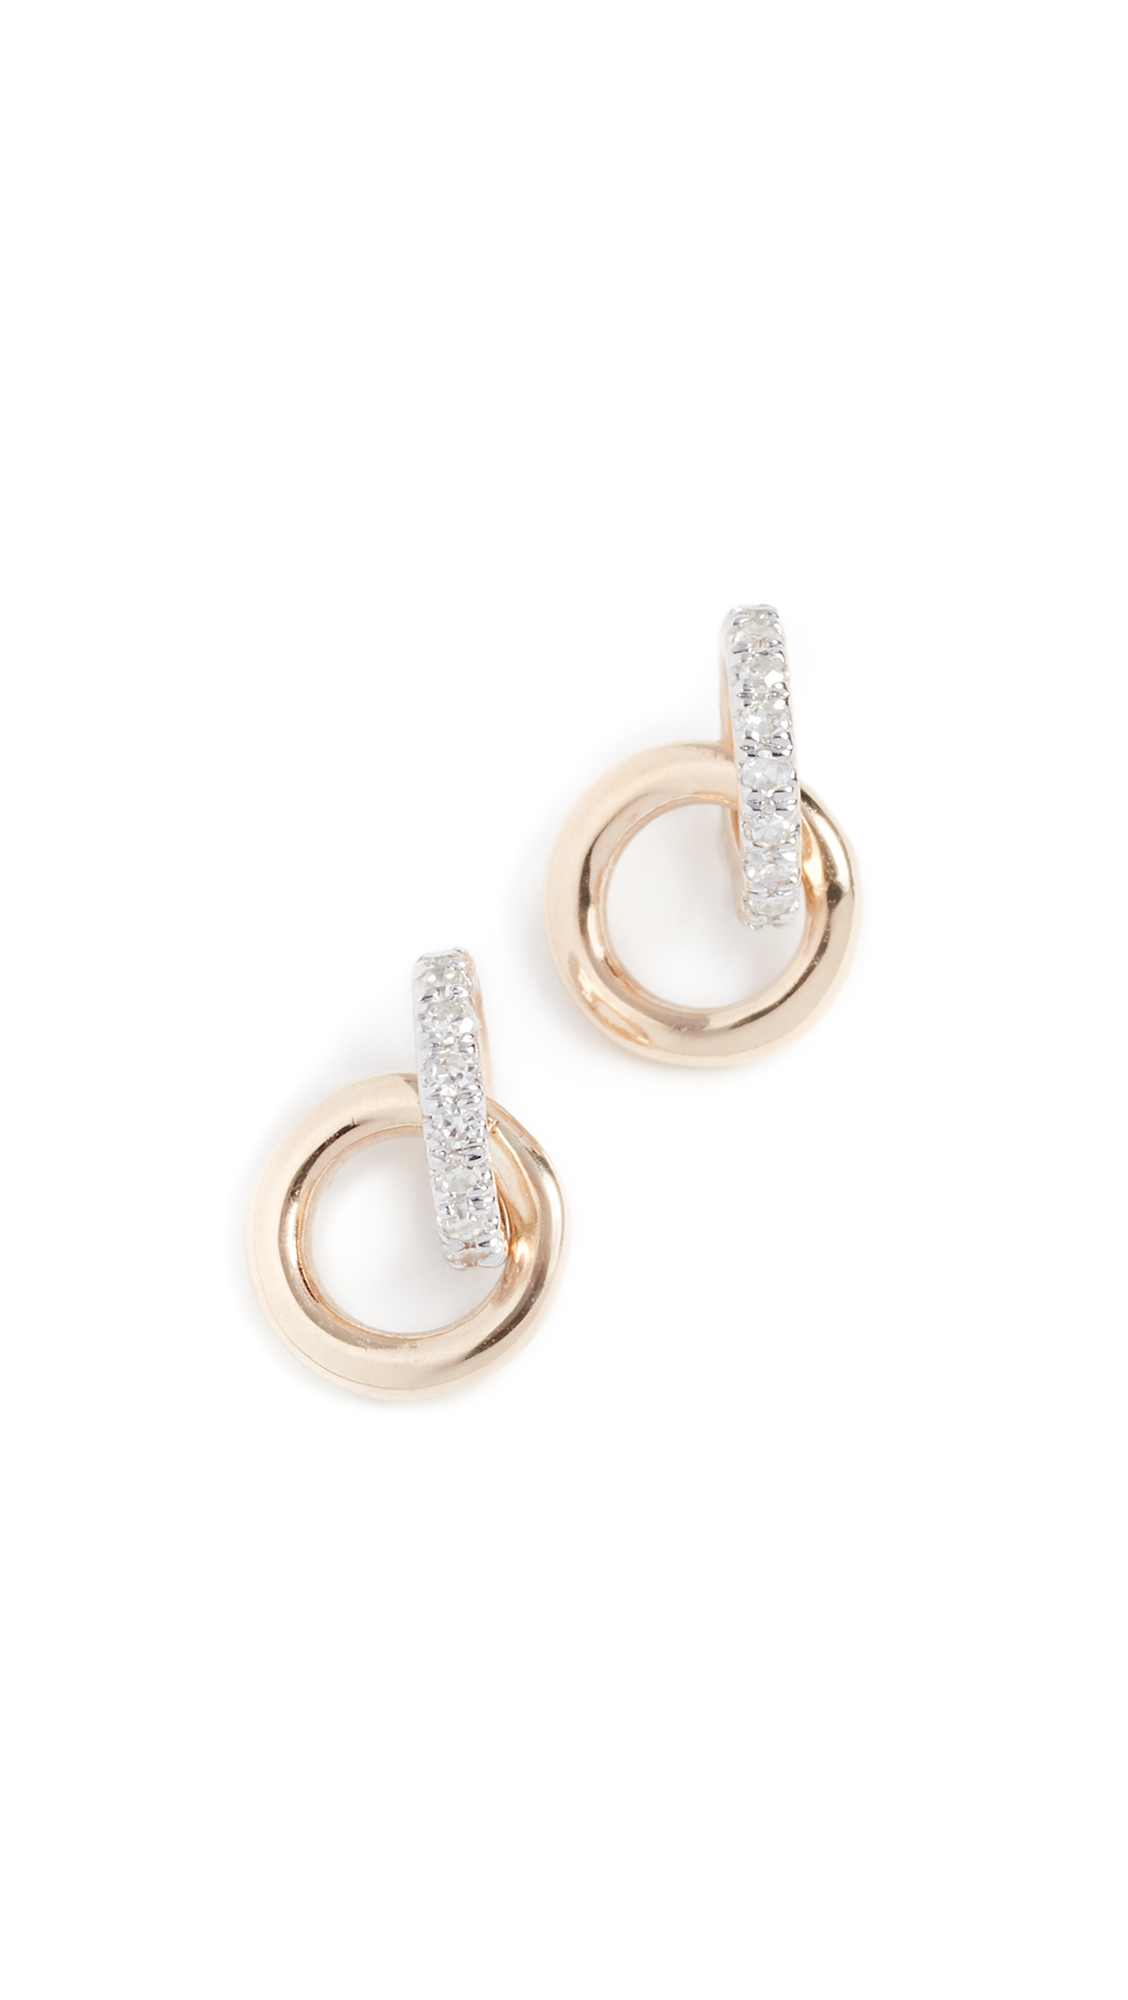 ADINA REYTER 14K DIAMOND INTERLOCKING LOOP POST EARRINGS